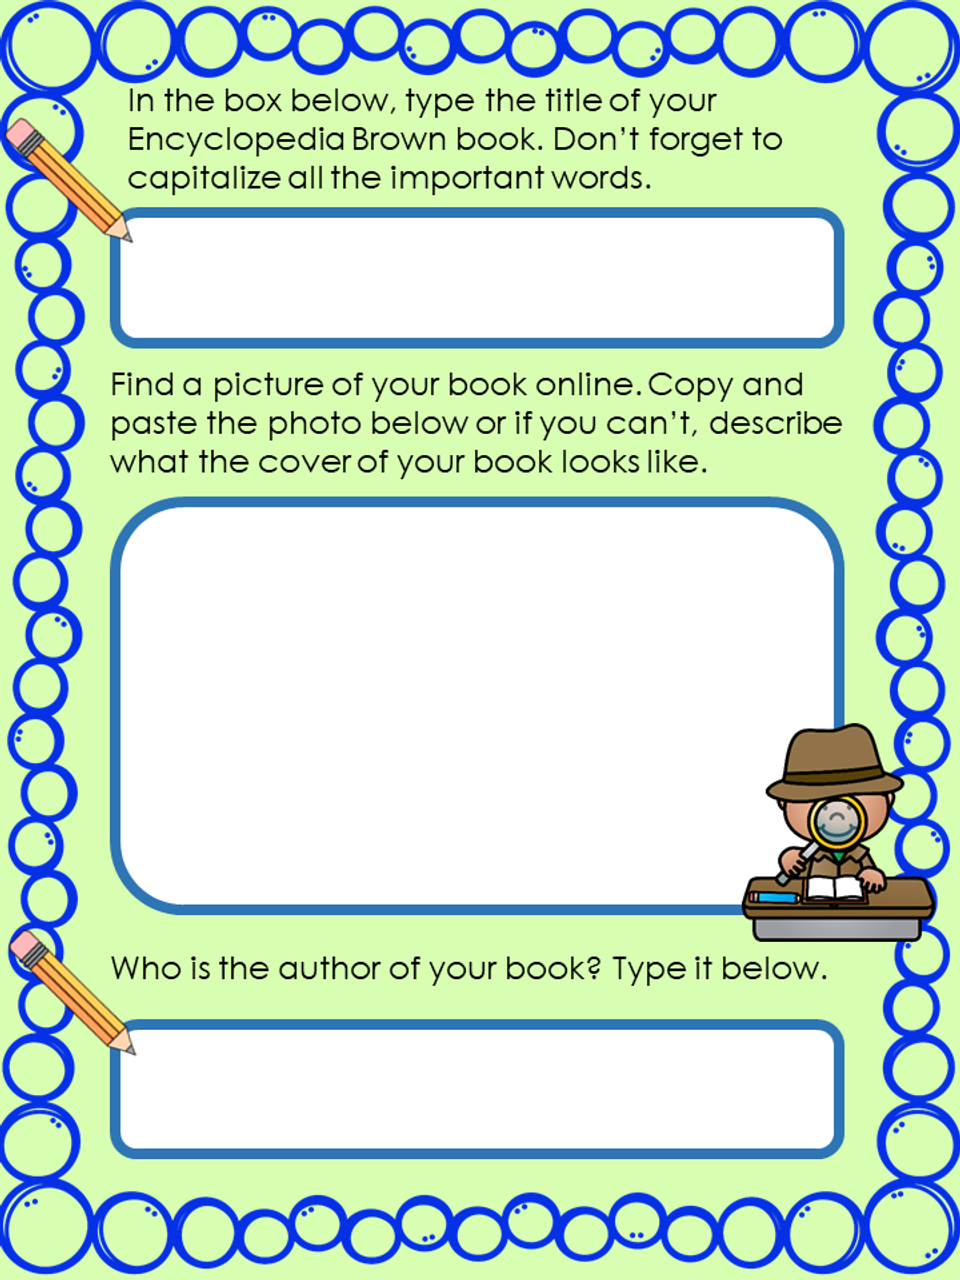 Encyclopedia Brown Series Digital Novel Study in Google Slides